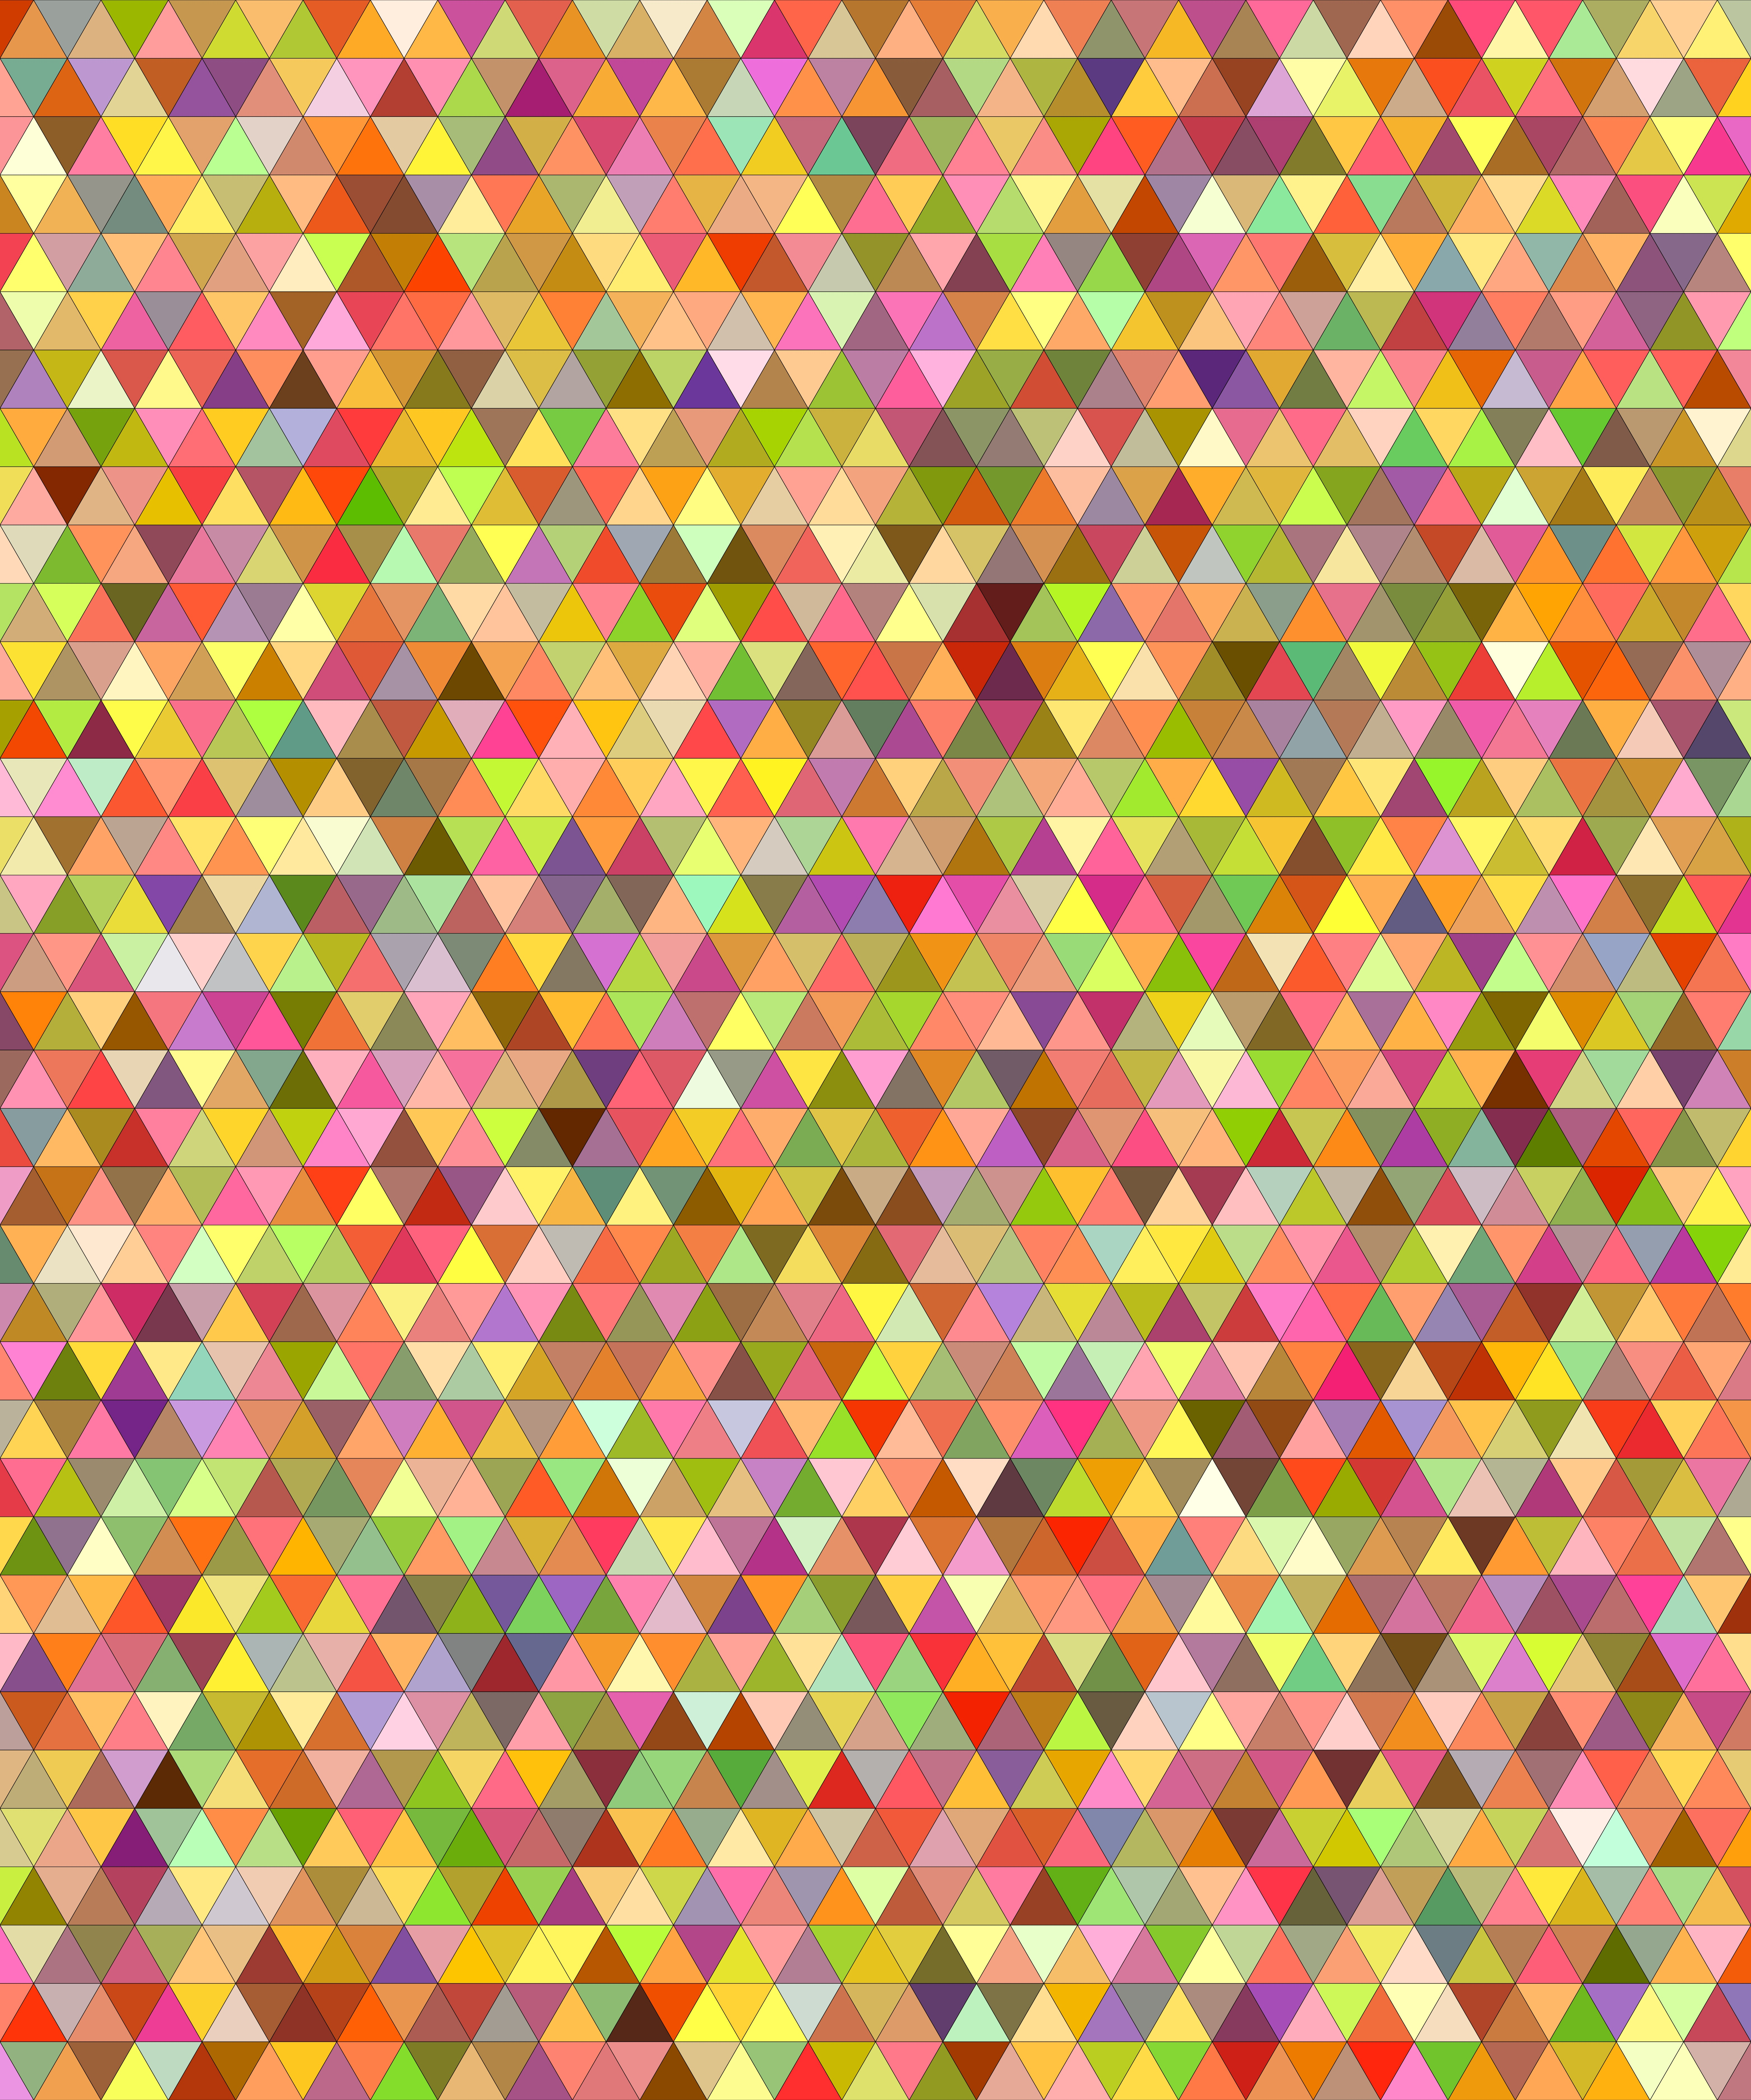 71211 download wallpaper Textures, Texture, Triangles, Multicolored, Motley, Pixels, Multicolor, Polychromatic, Graphic screensavers and pictures for free